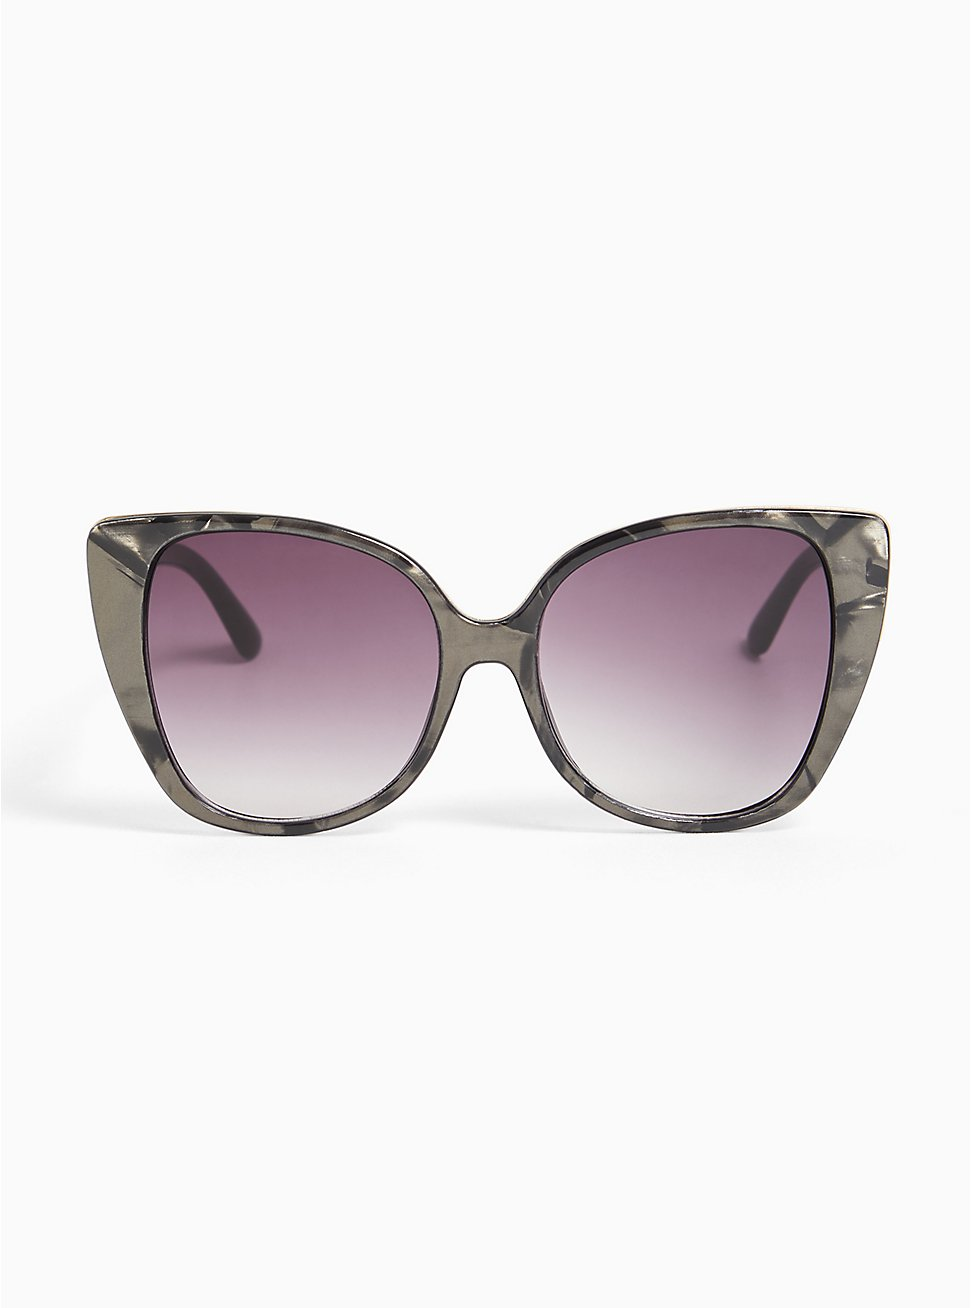 Grey Marble Cat Eye Sunglasses, , hi-res